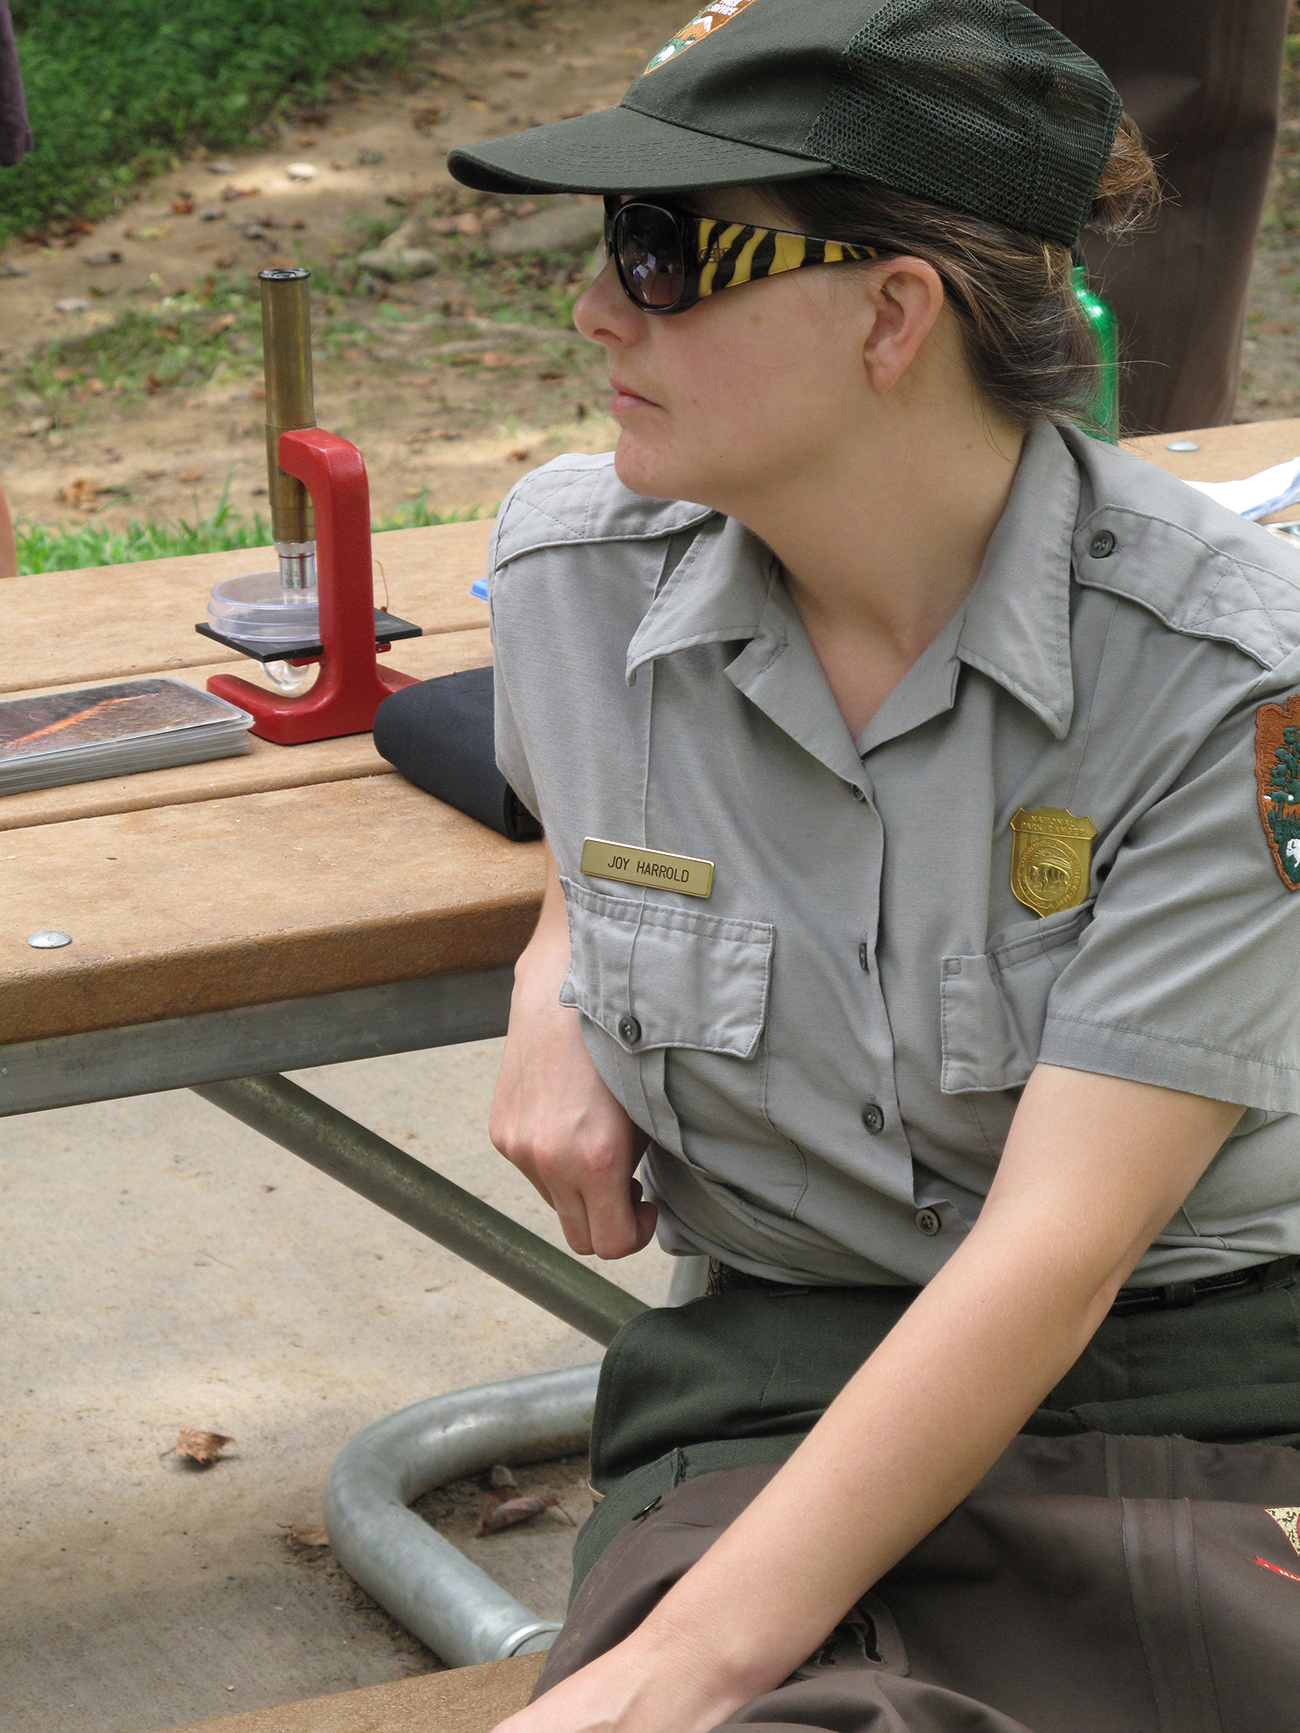 A park ranger, wearing an official uniform and badge, sits at a picnic table outside.